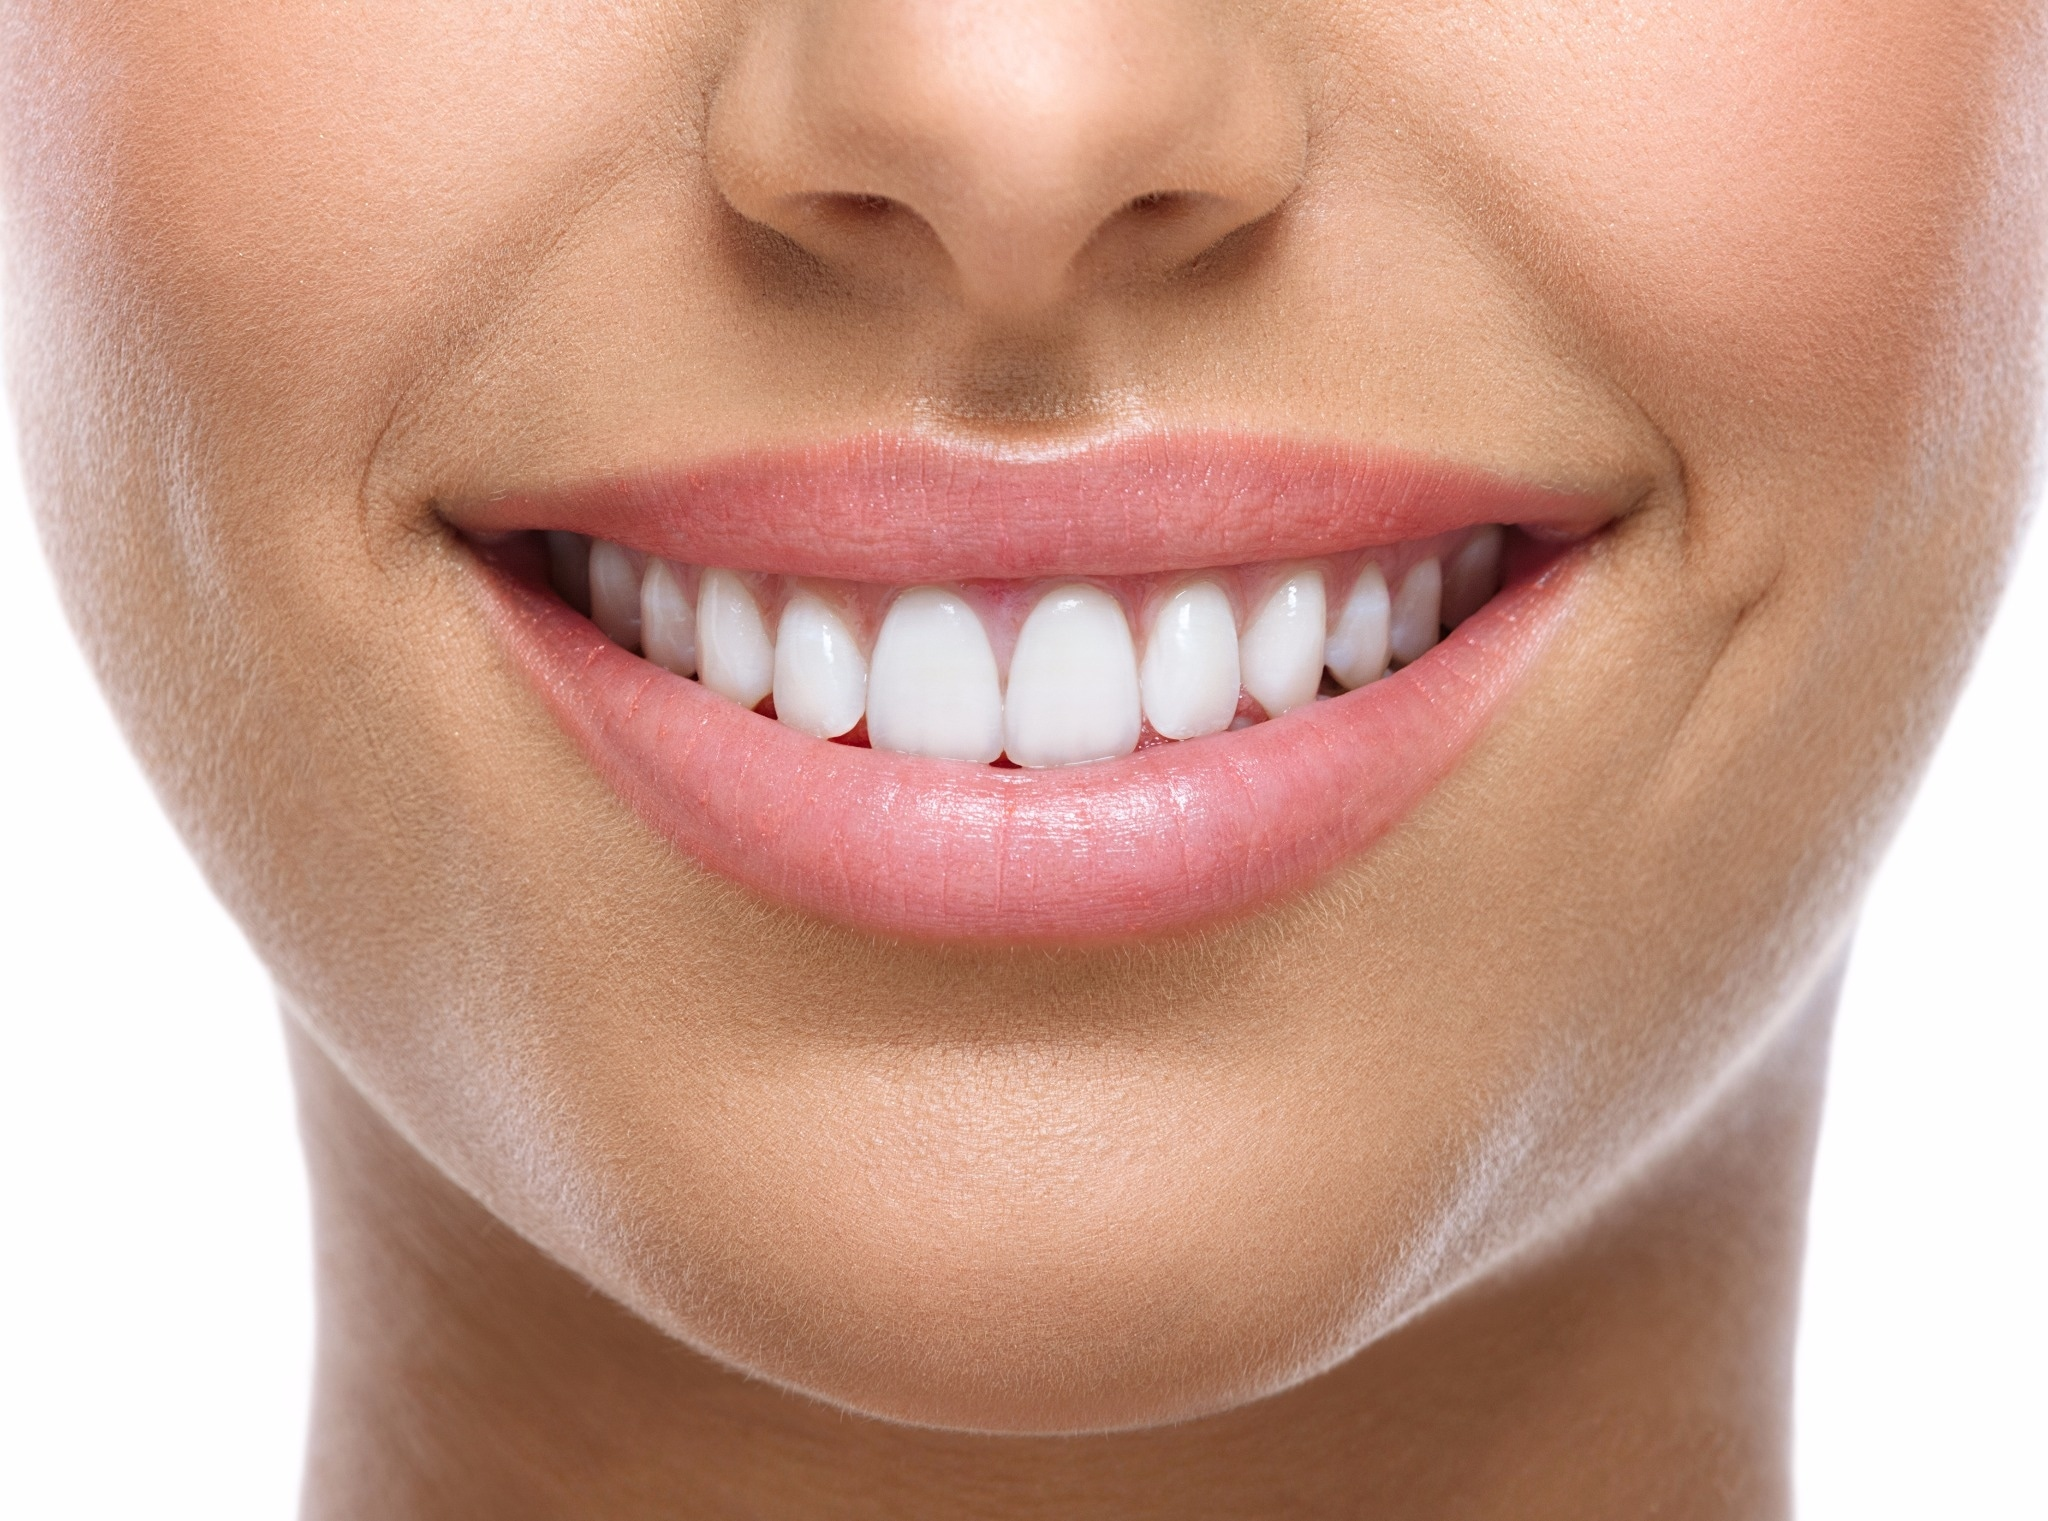 This Startup Makes an Invisalign-Like Teeth Aligner that You Can Do at Home